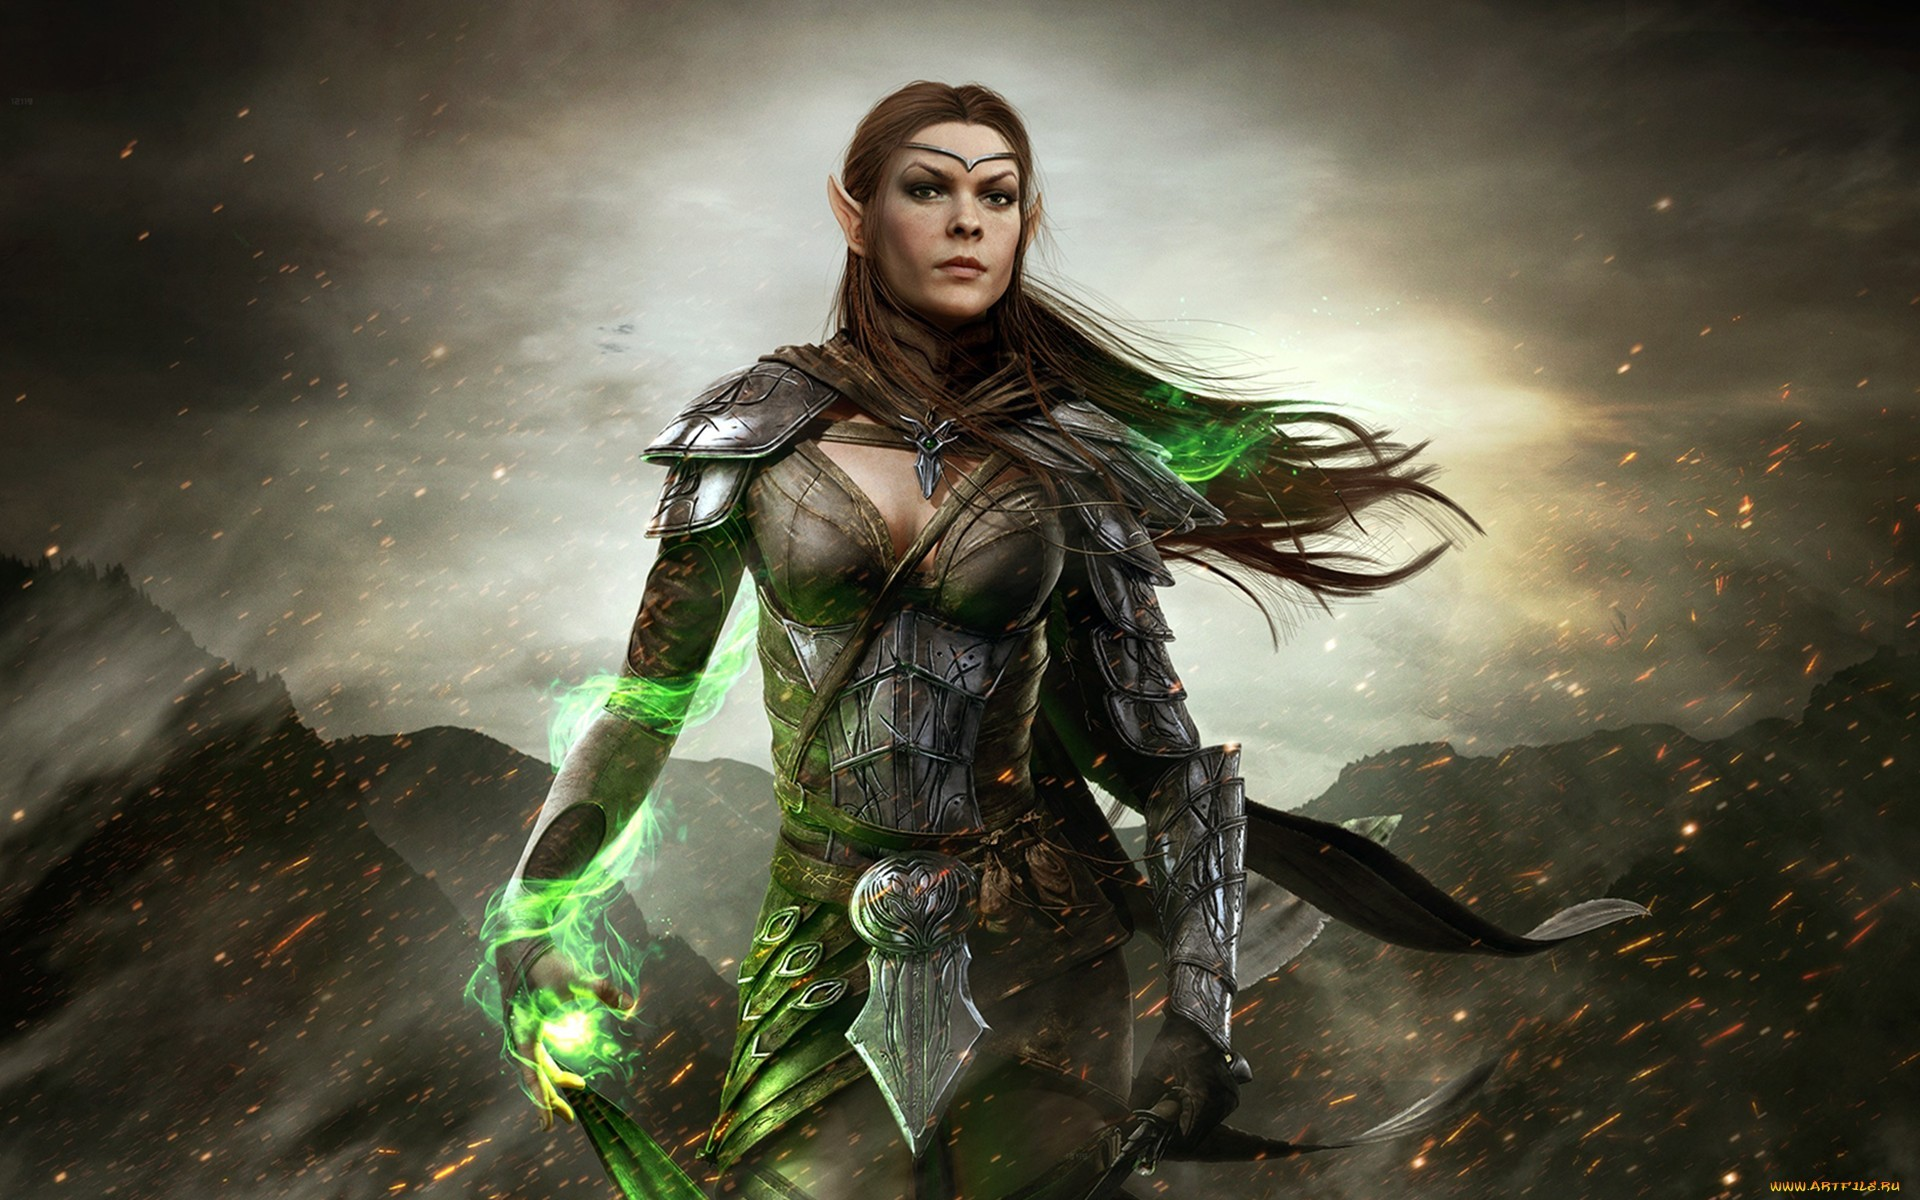 Elf woman of elder scrolls online nackt gallery